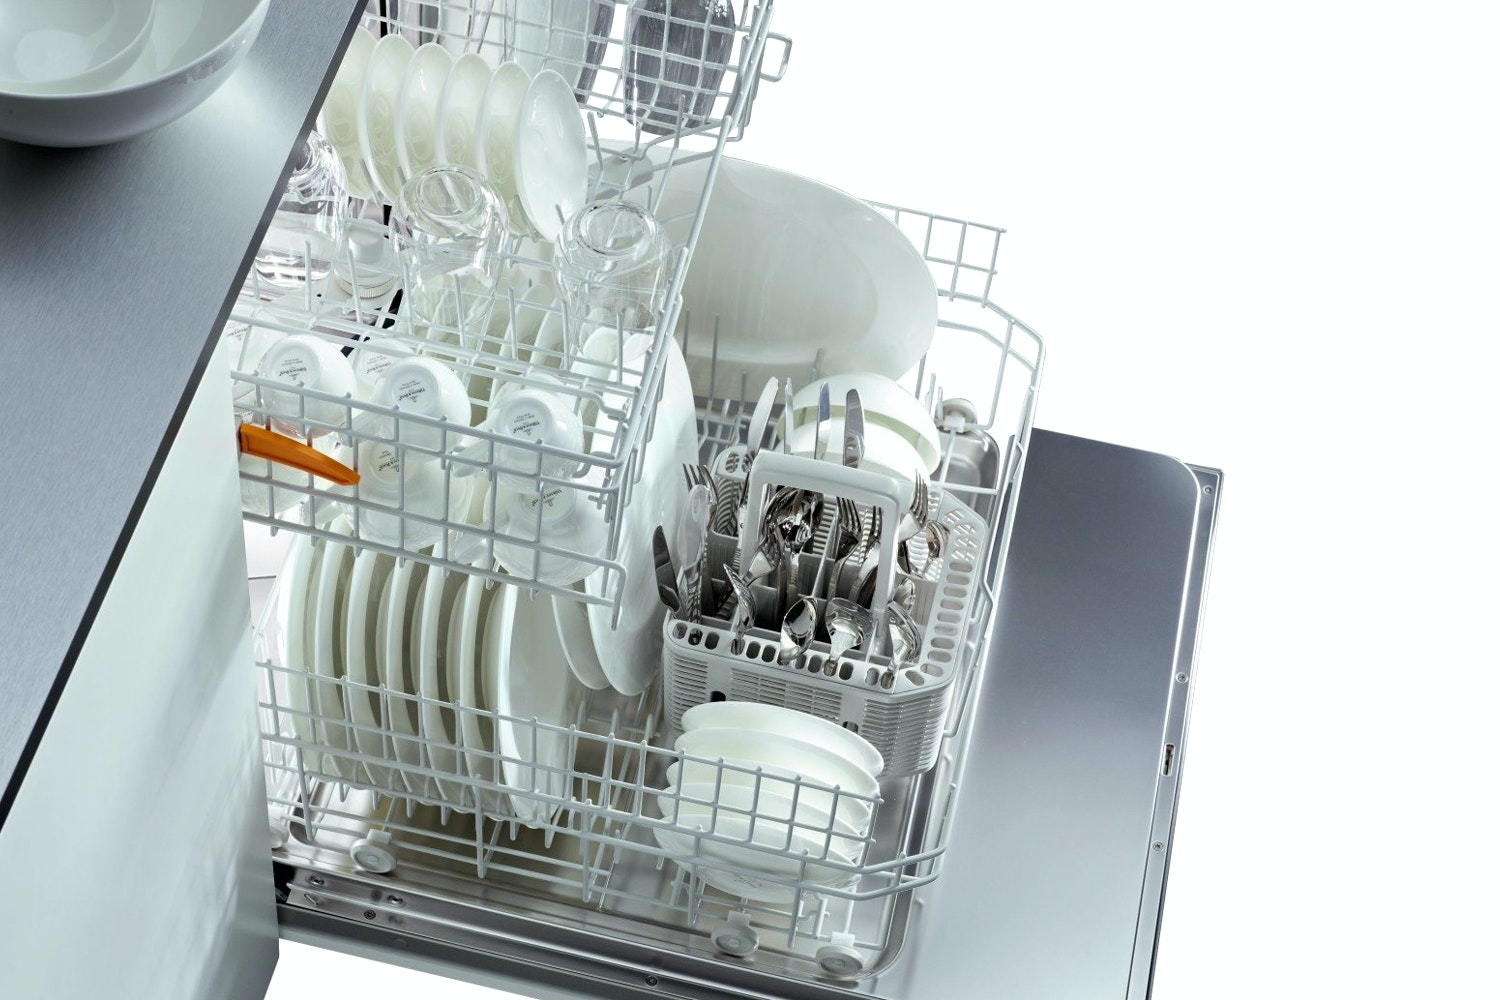 Miele Jubilee Integrated Dishwasher | G4990 Vi Jubilee